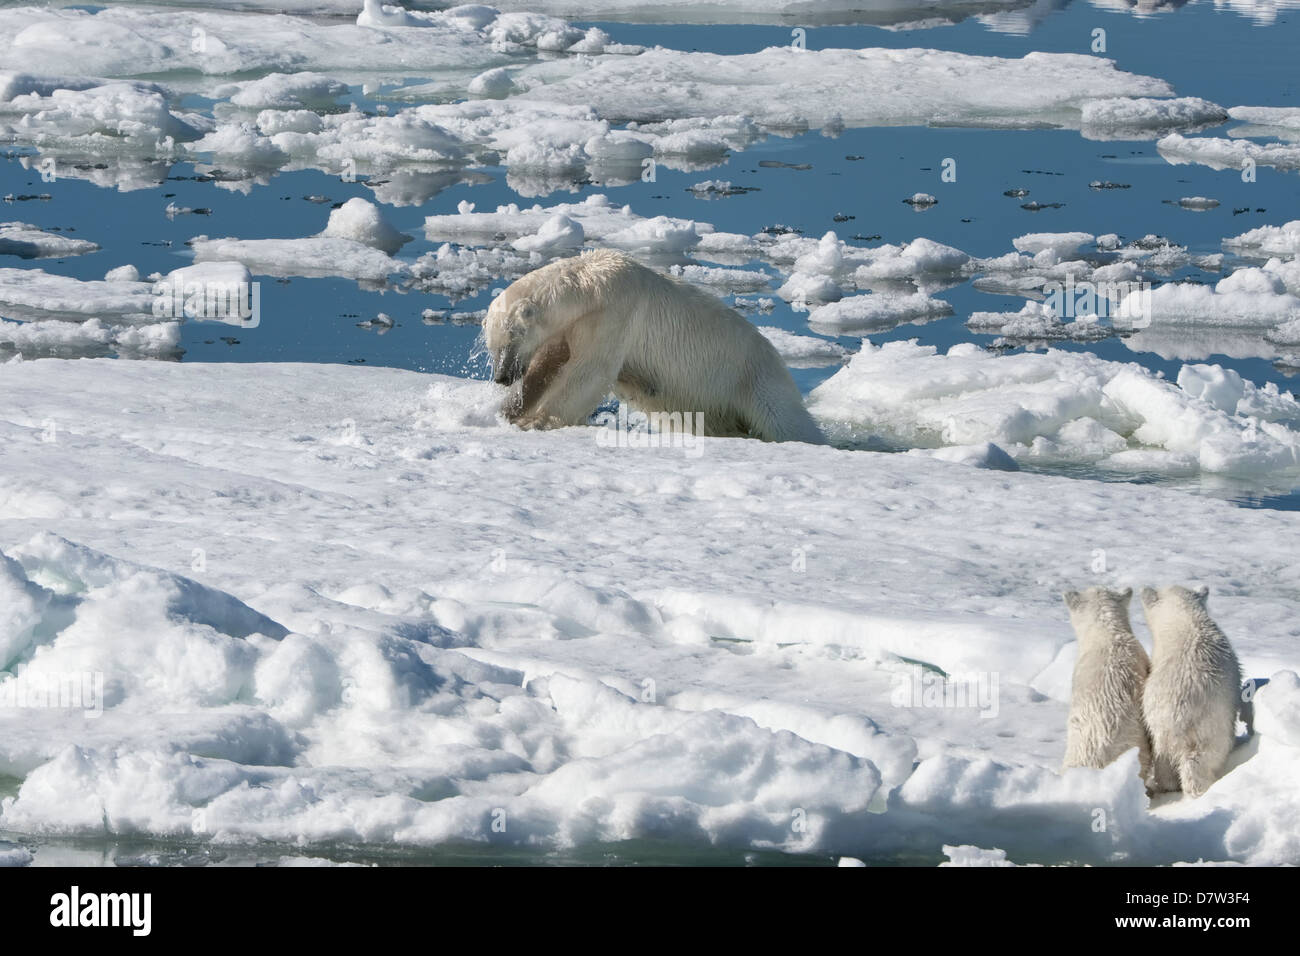 Female polar bear hunting a ringed seal accompanied by two cubs, Svalbard Archipelago, Barents Sea, Norway, Scandinavia - Stock Image